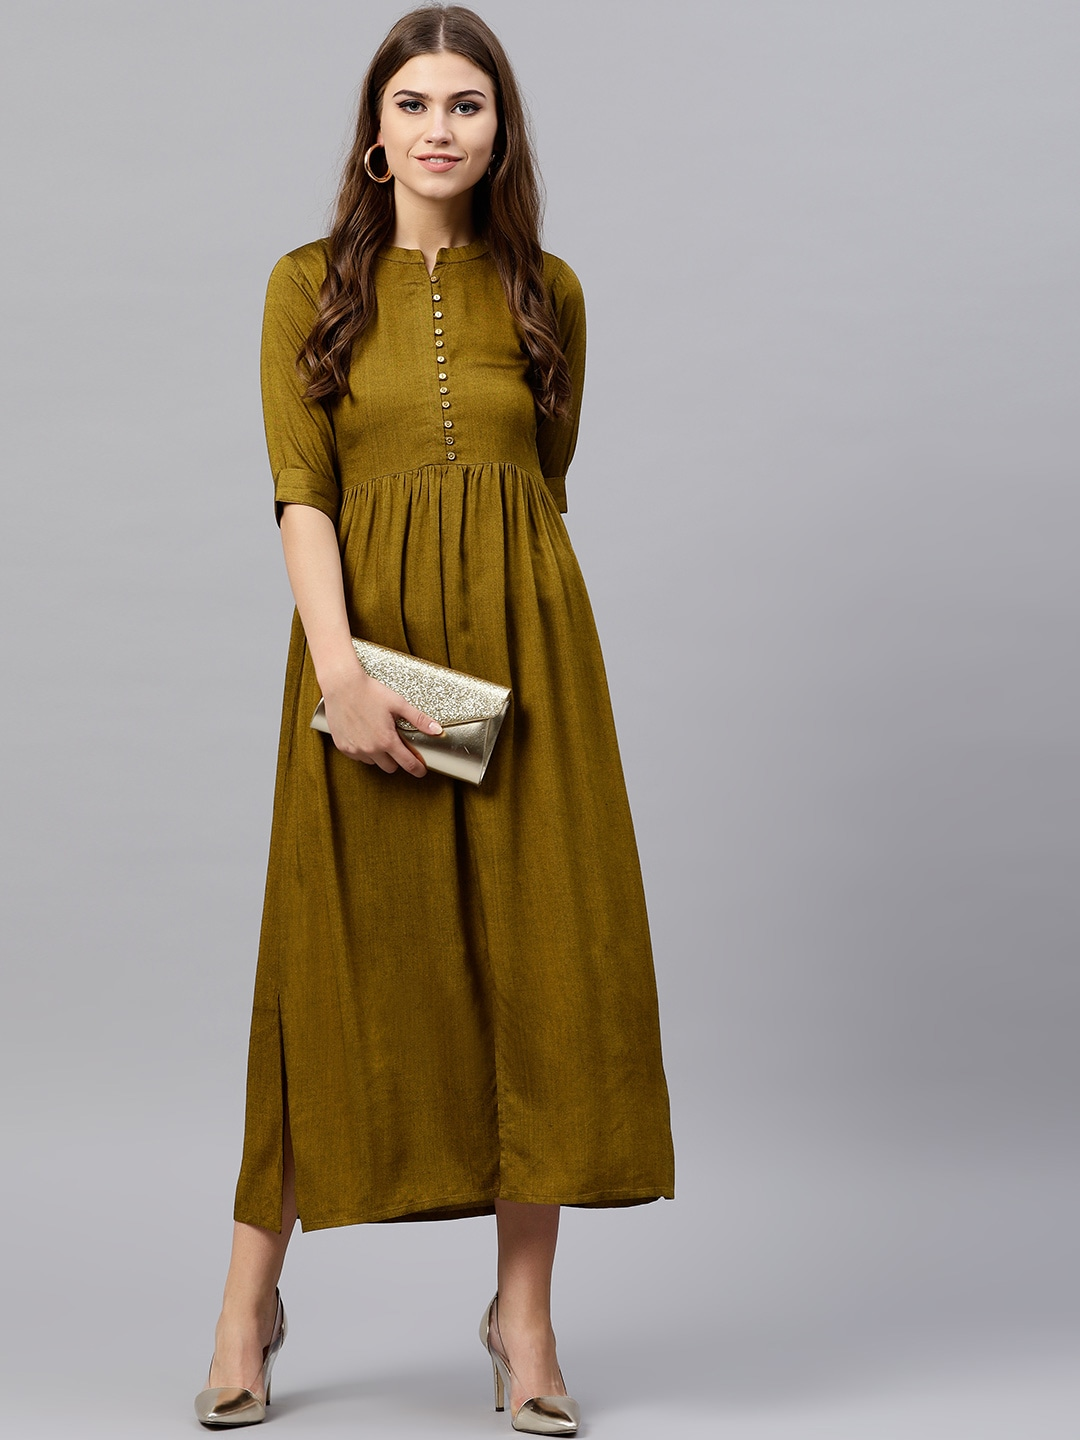 15930c998e9a Long Dresses - Buy Maxi Dresses for Women Online in India - Upto 70% OFF